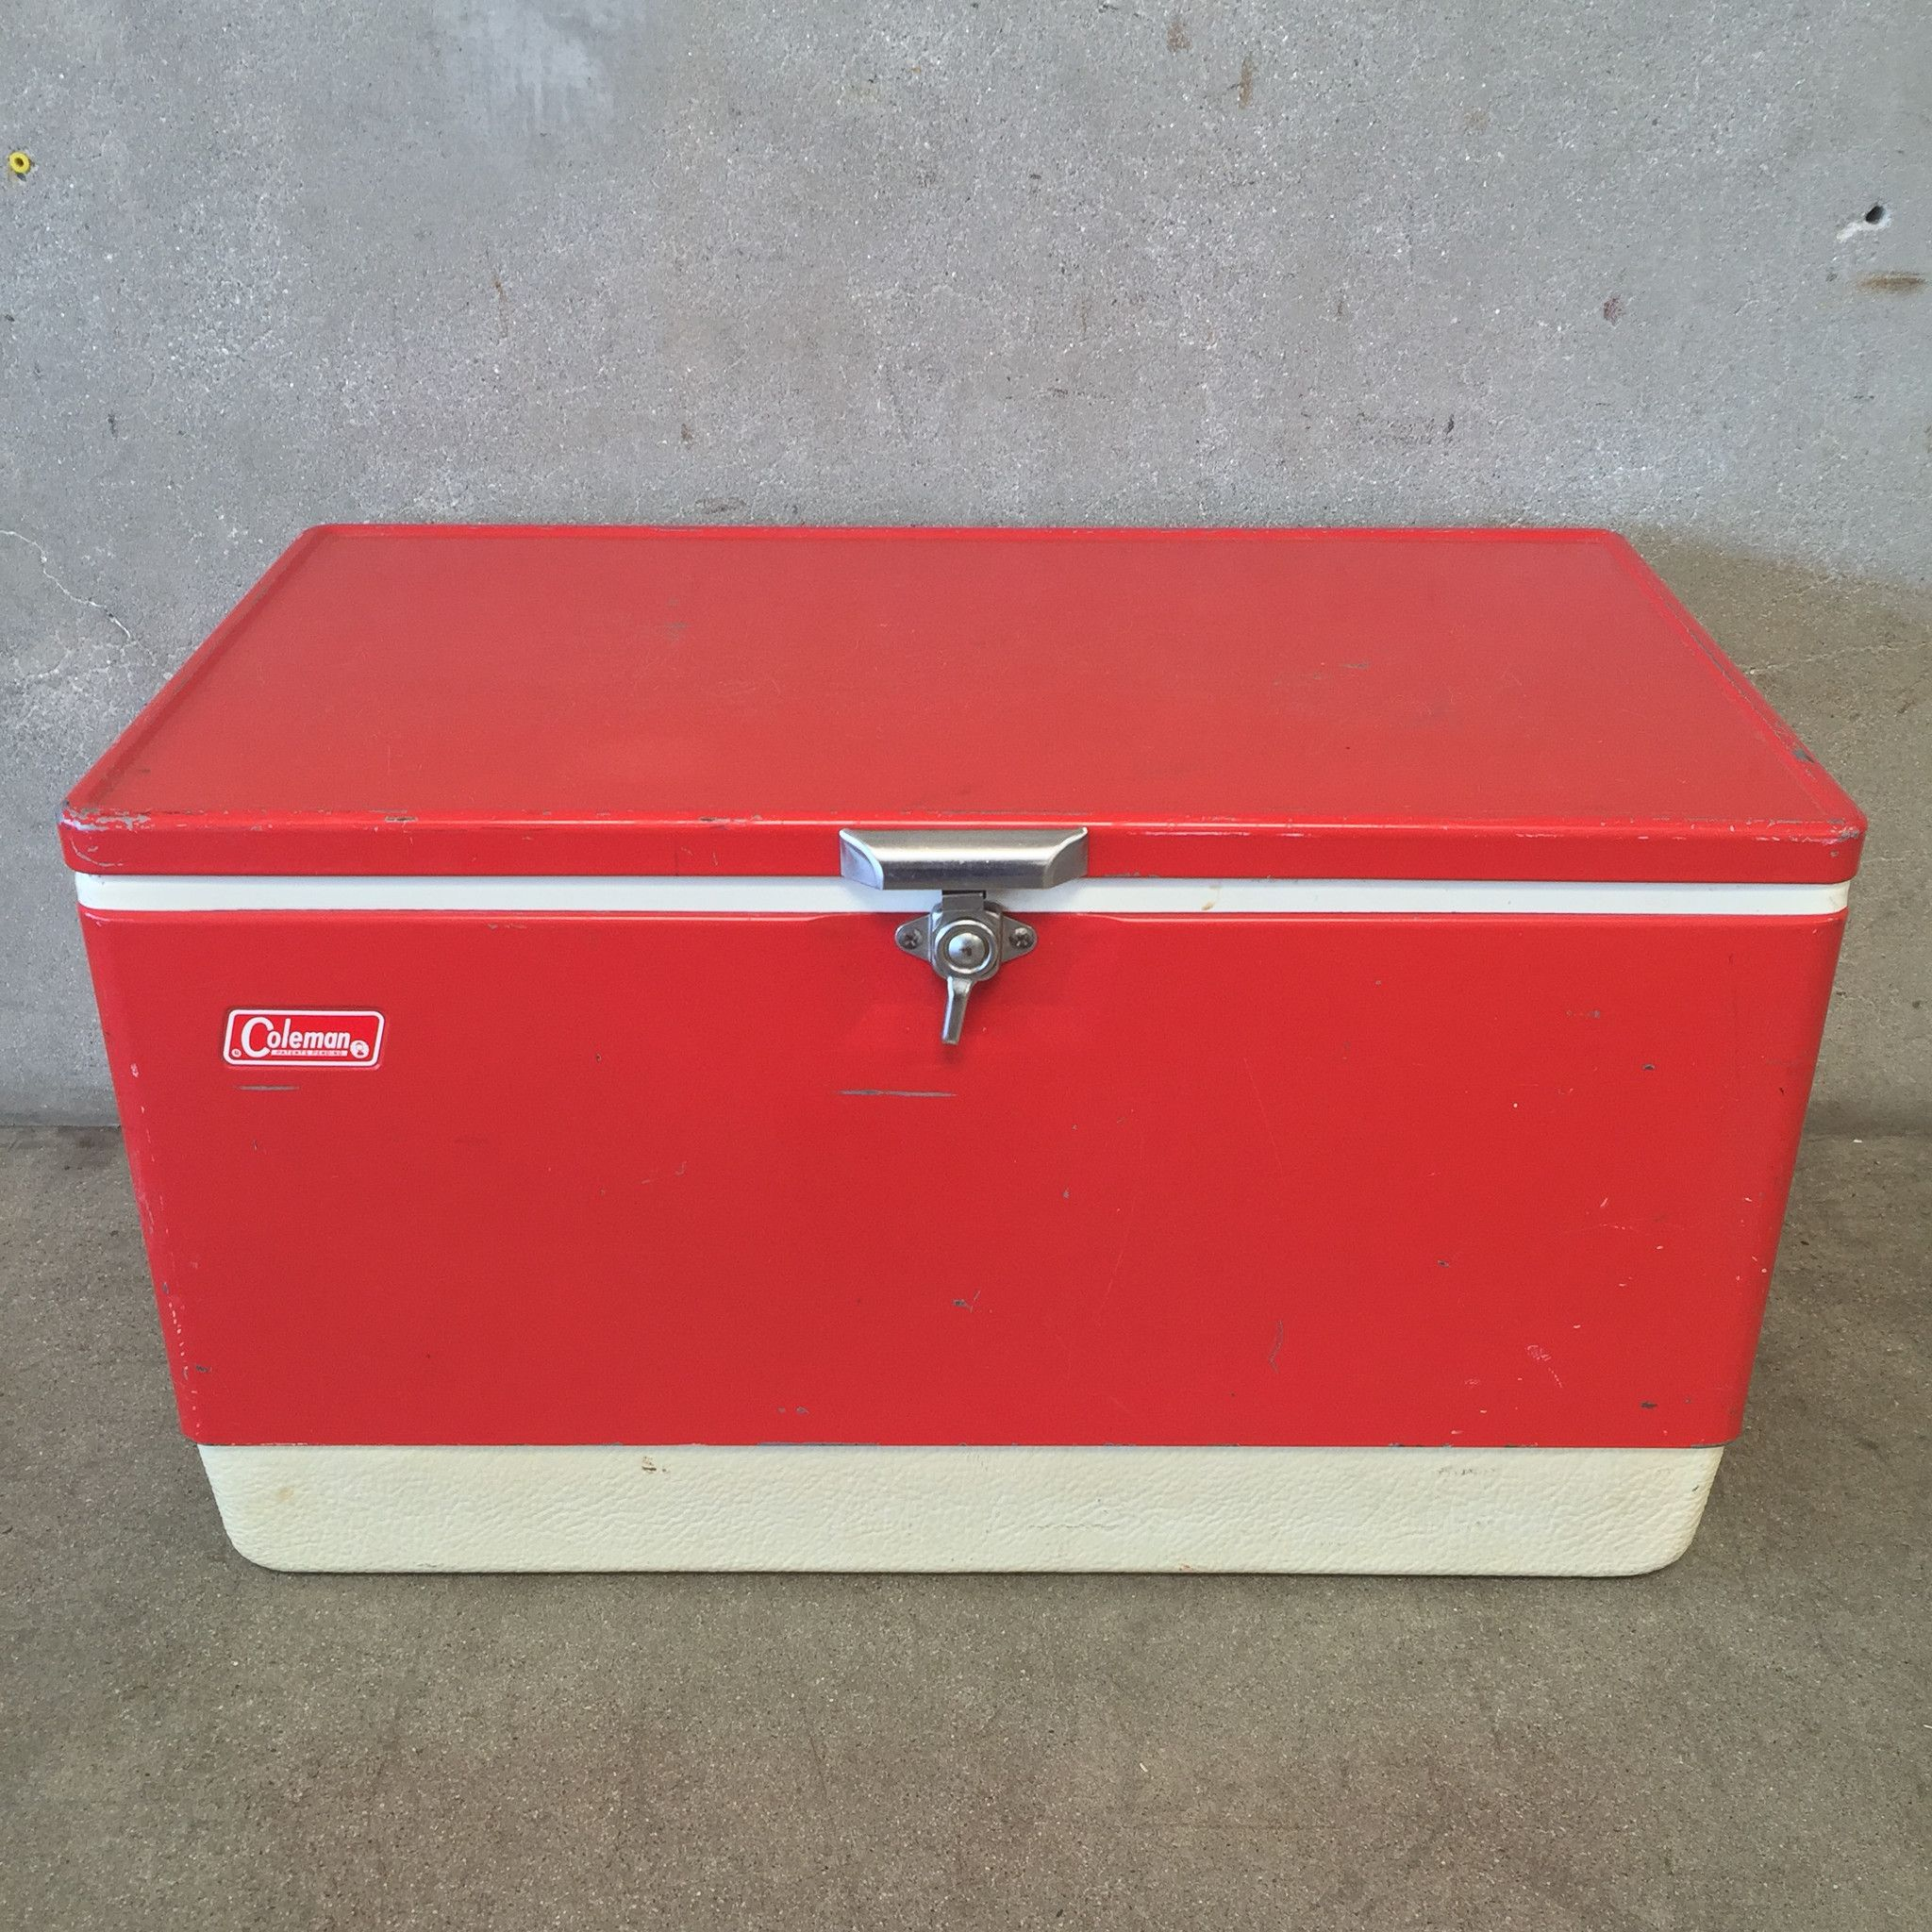 Red Vintage Coleman Cooler With Tray 16